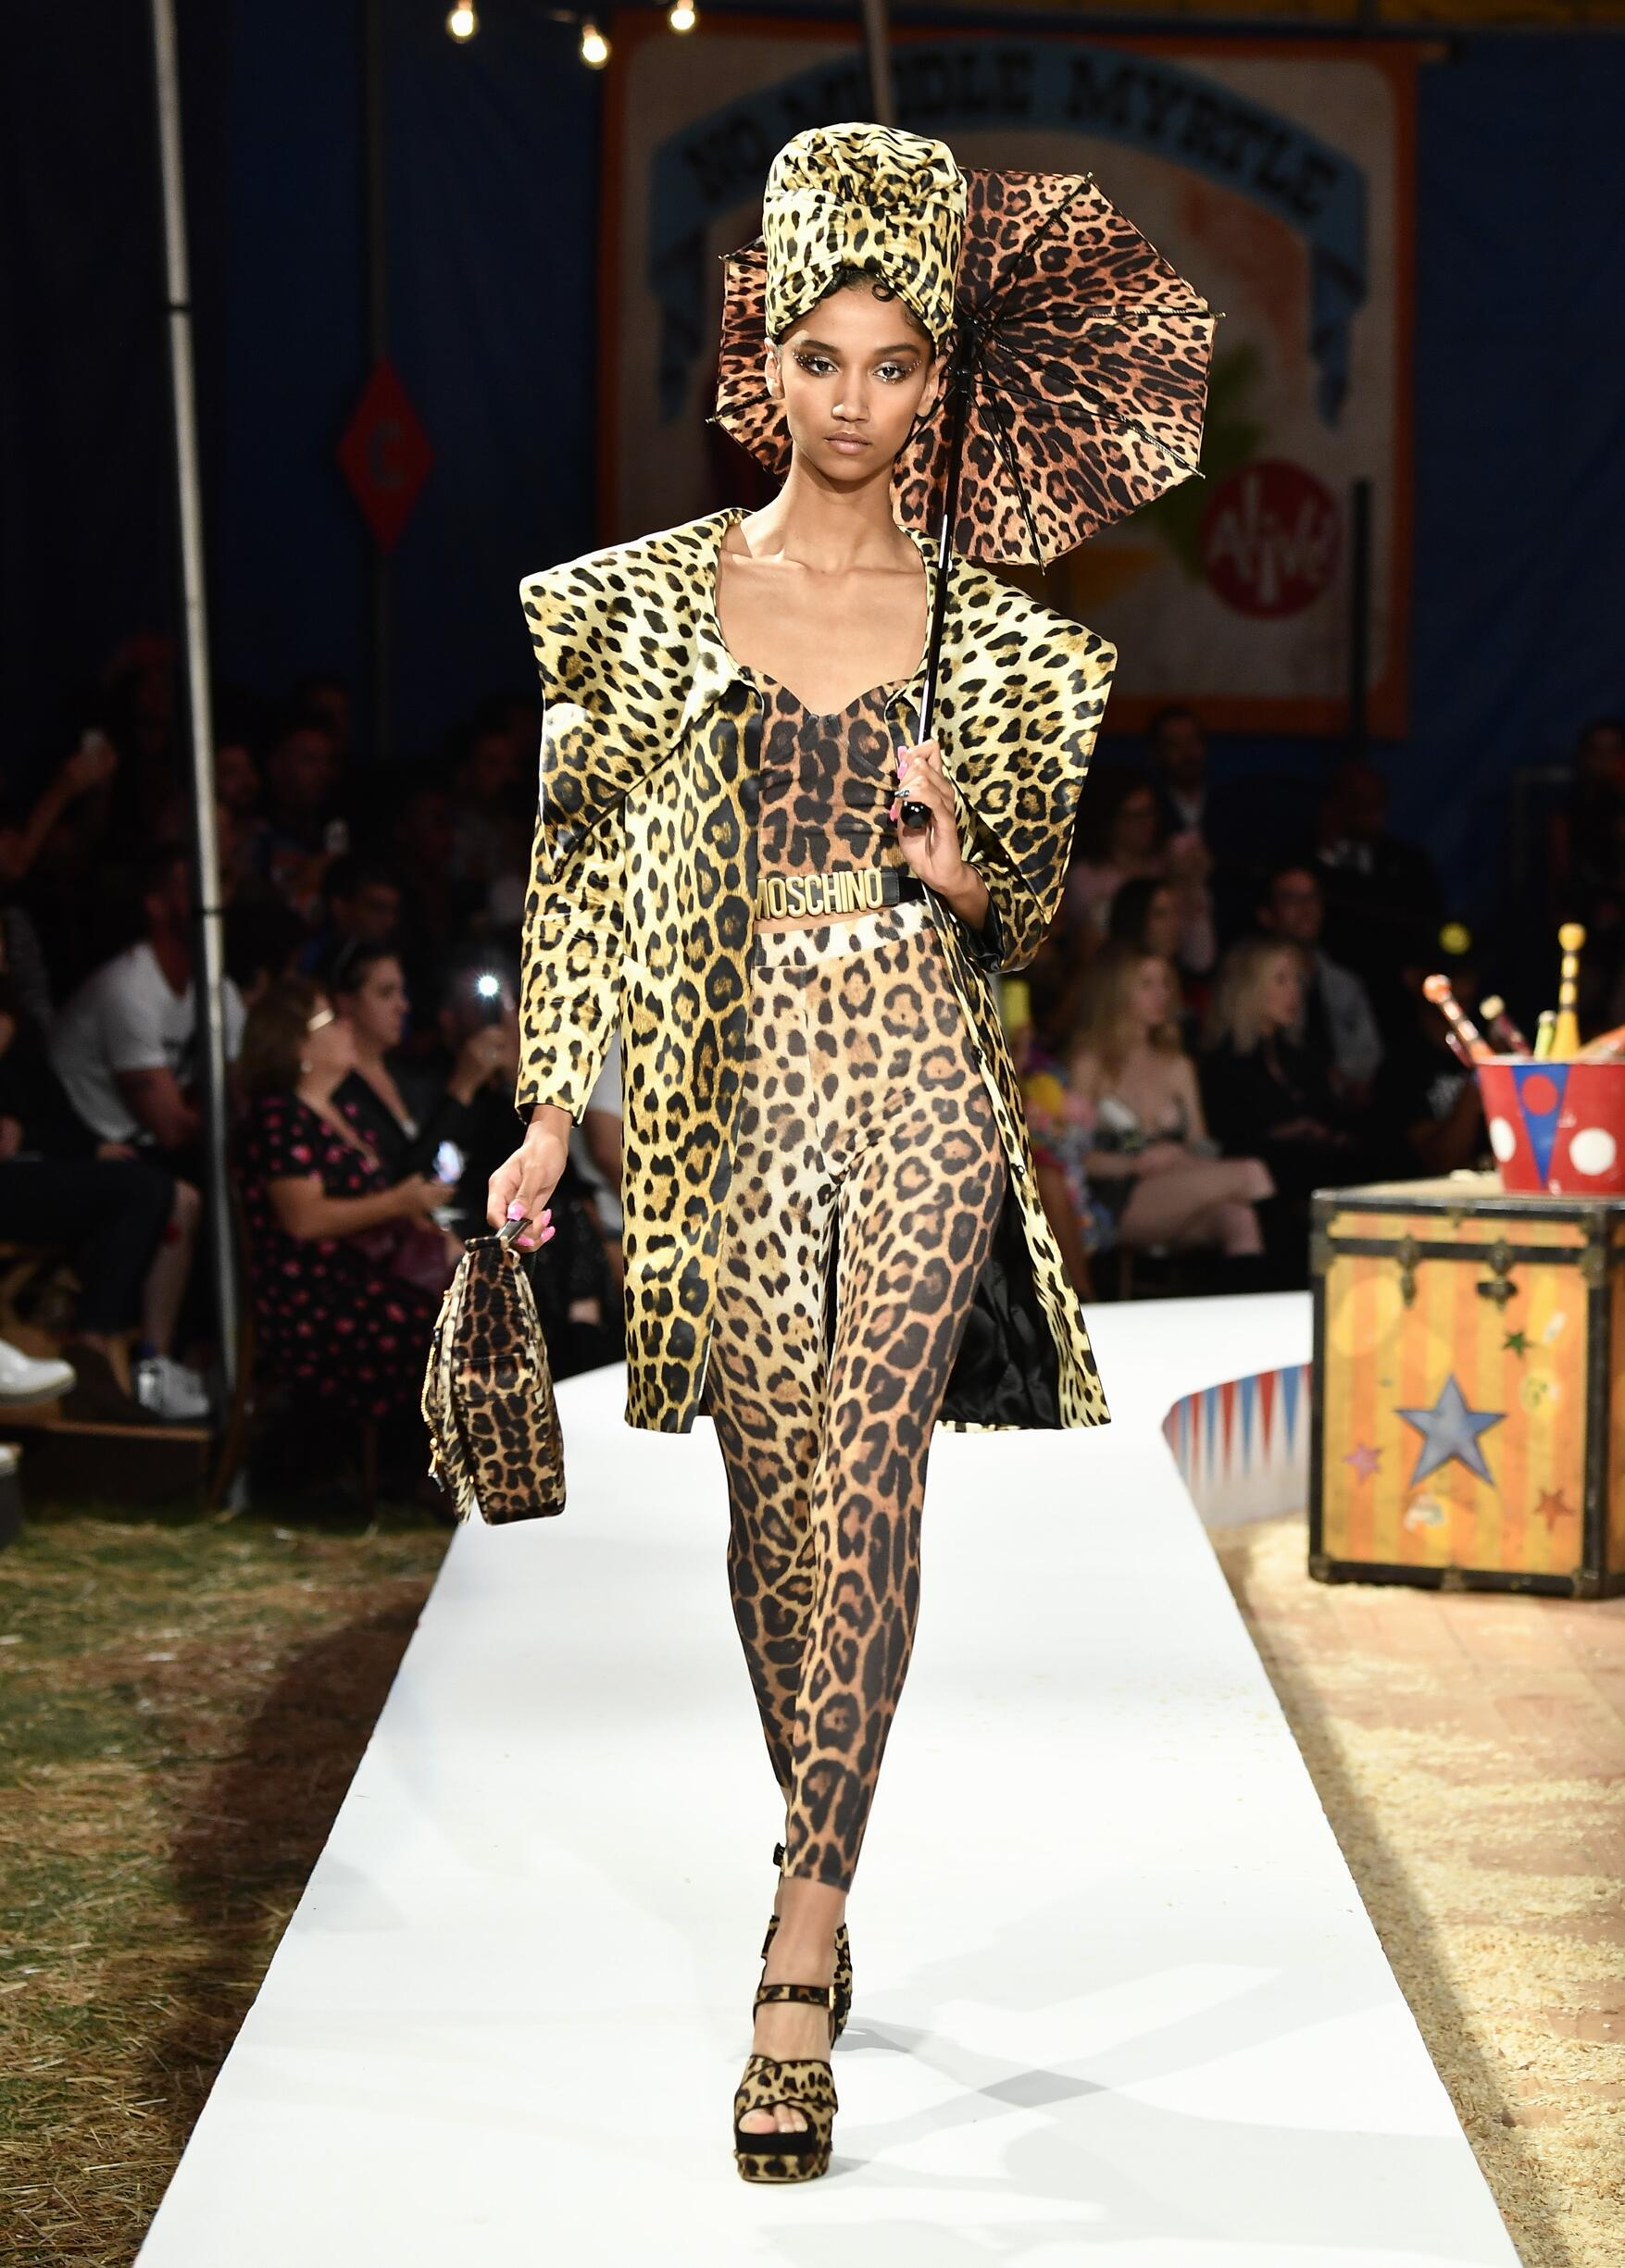 Moschino Spring Summer 2019 Menswear and Women's Resort Collection Look 21 Los Angeles